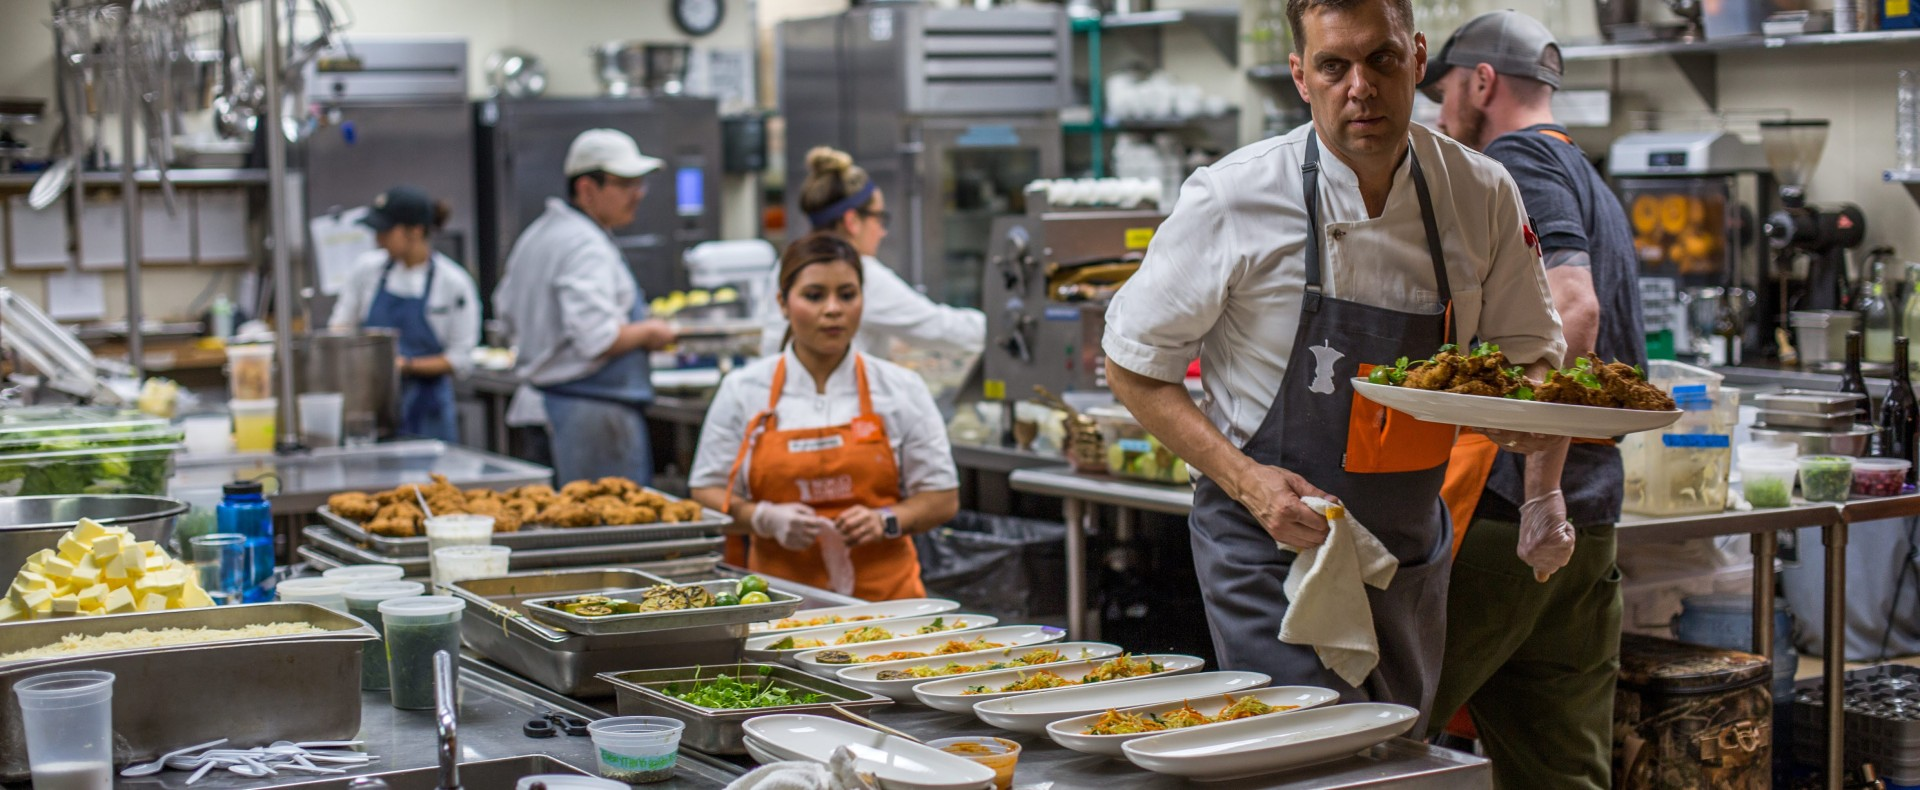 Chefs wearing No Kid Hungry aprons in a busy kitchen